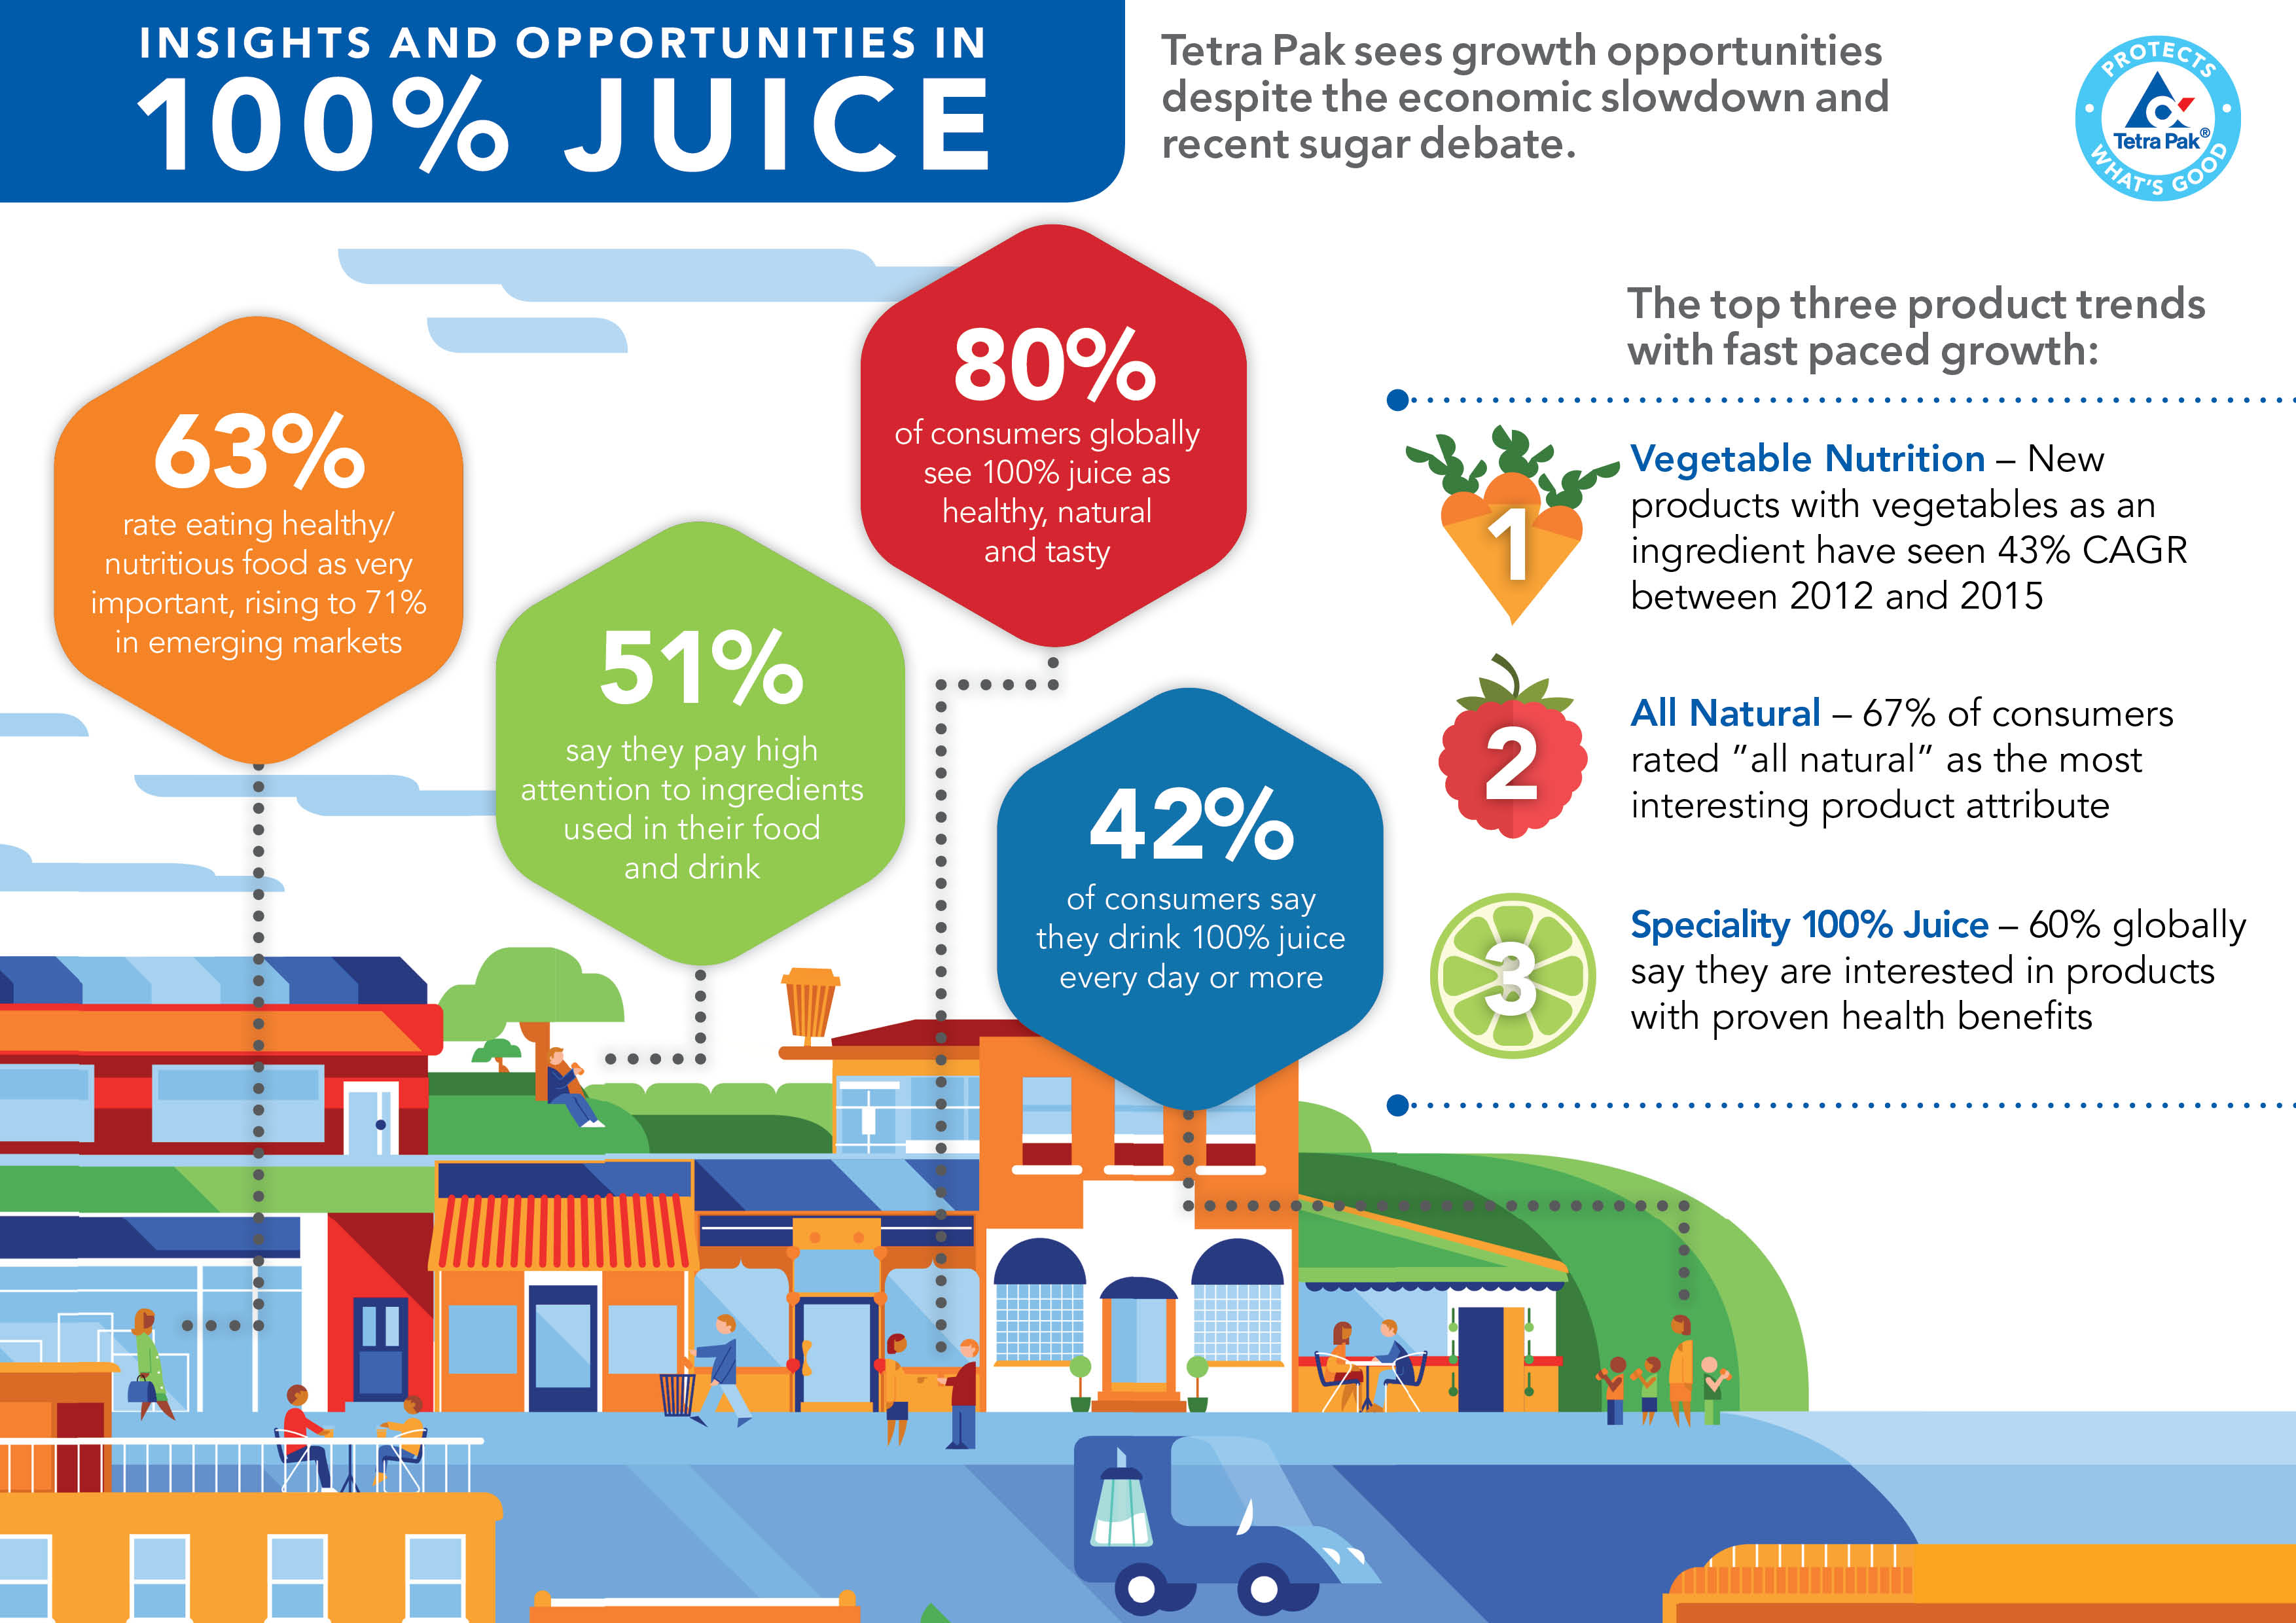 Insights and Opportunities in 100% Juice   3BL Media